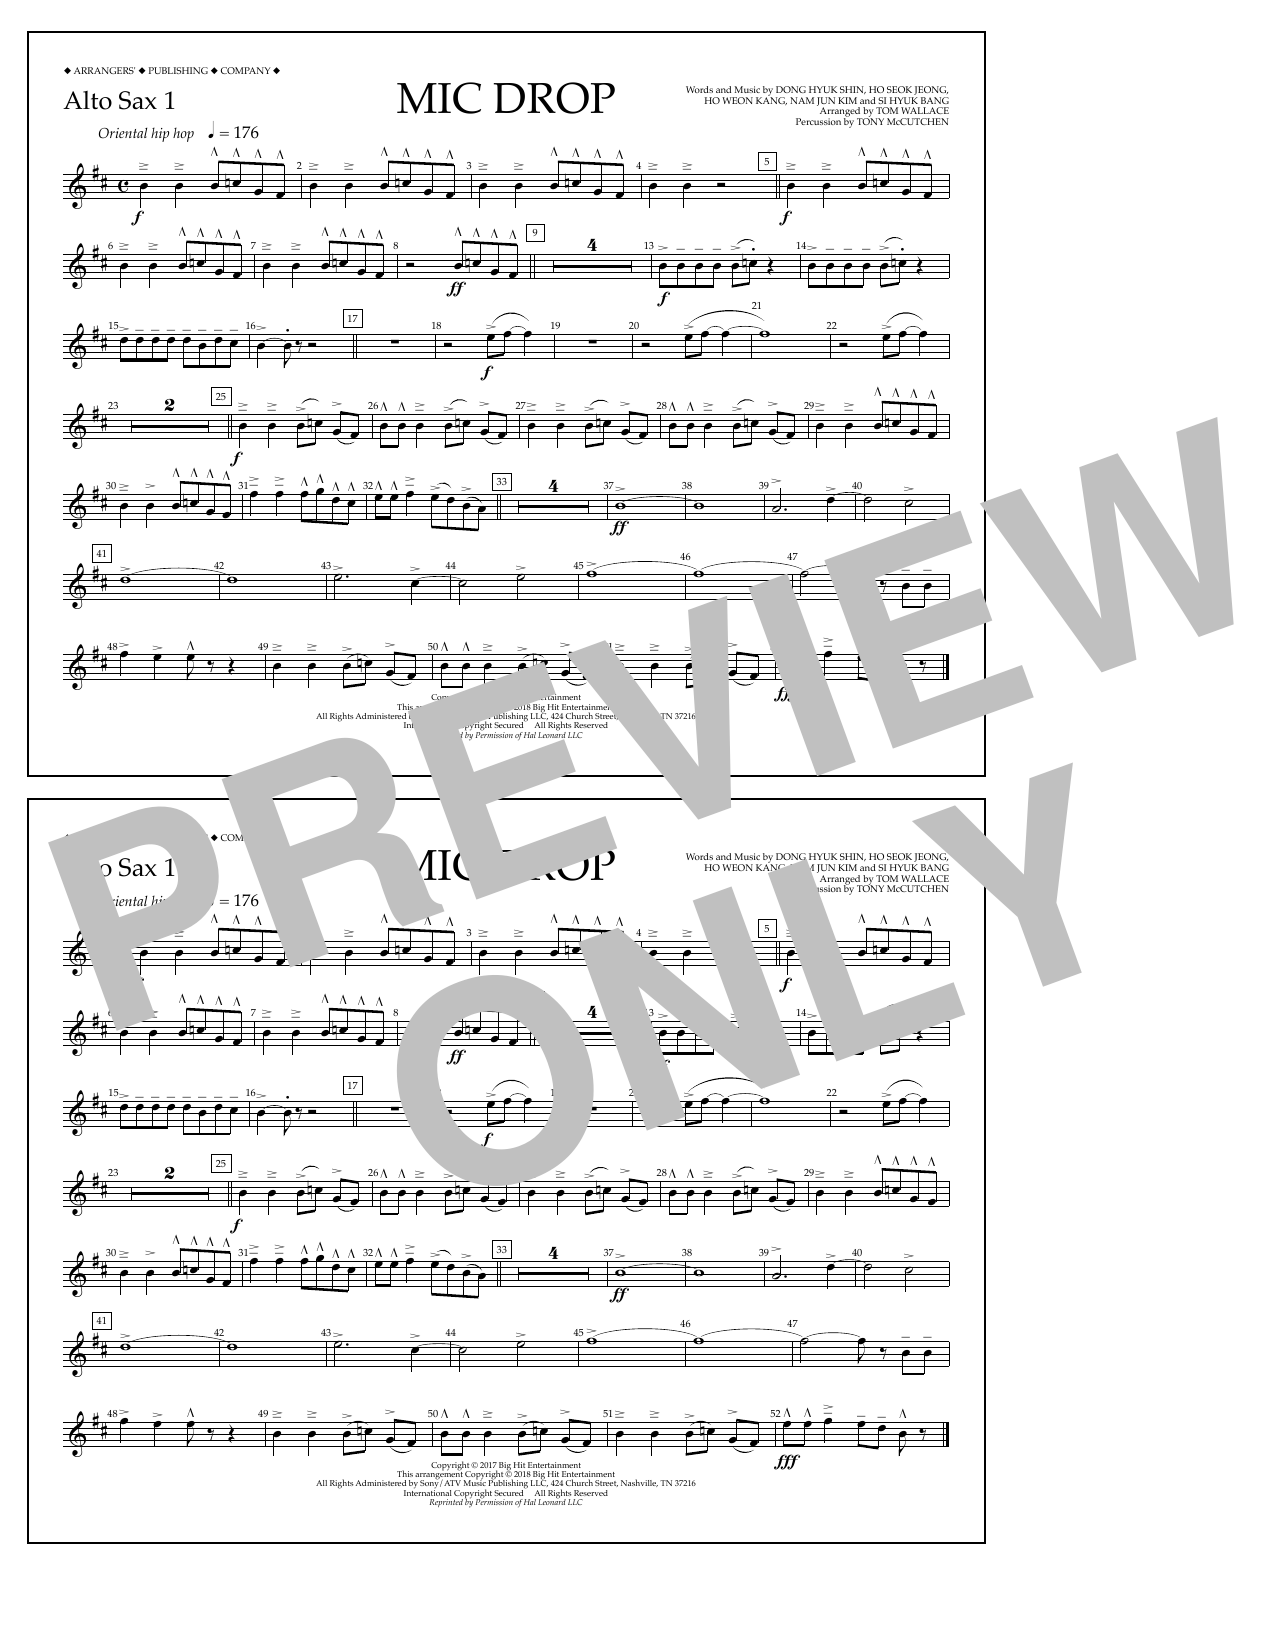 Download Tom Wallace 'Mic Drop - Alto Sax 1' Digital Sheet Music Notes & Chords and start playing in minutes